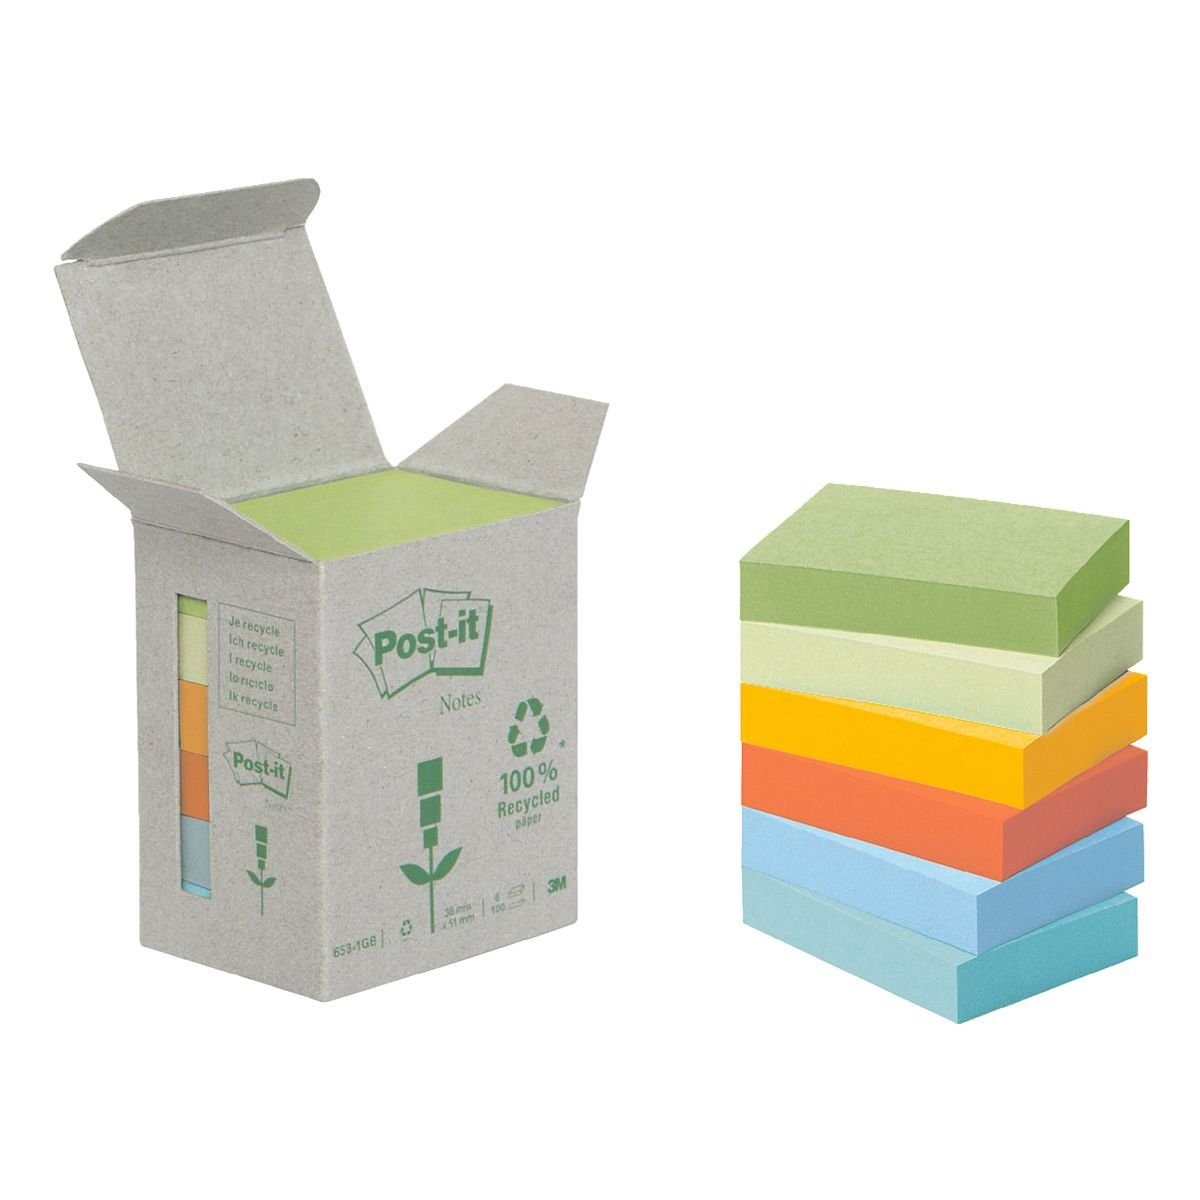 Post-it Notes (Recycle) 6er-Pack Haftnotizblöcke »Recycling Notes 653«